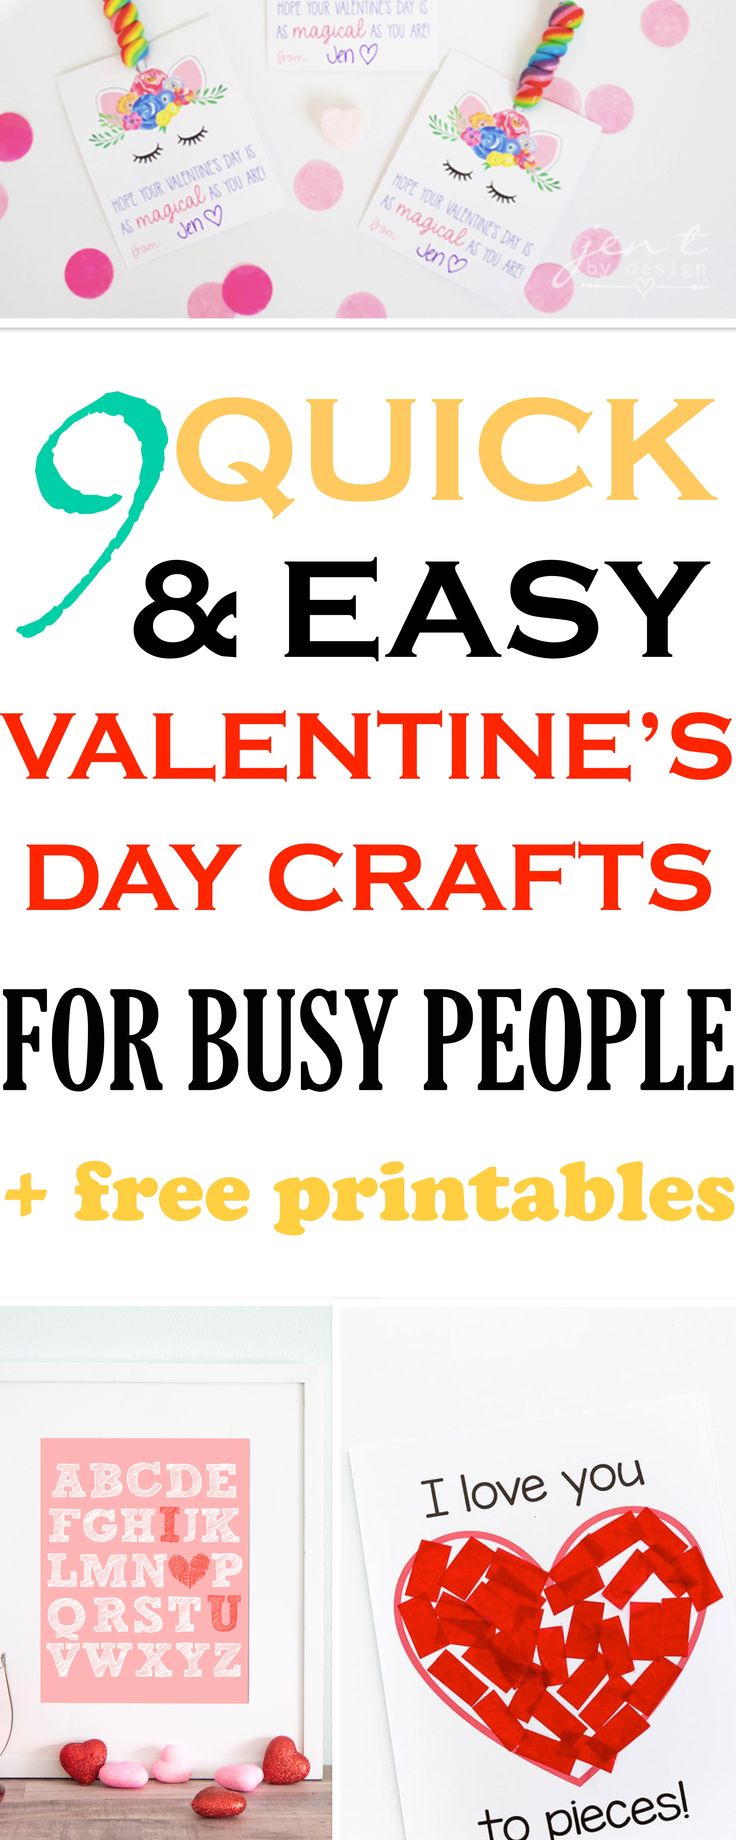 Awesome Valentine's Day crafts with FREE PRINTABLES. If you need last minute quick and easy crafts, these are perfect ideas. #valentinesday #craftsforkids #crafts #diy #easycrafts